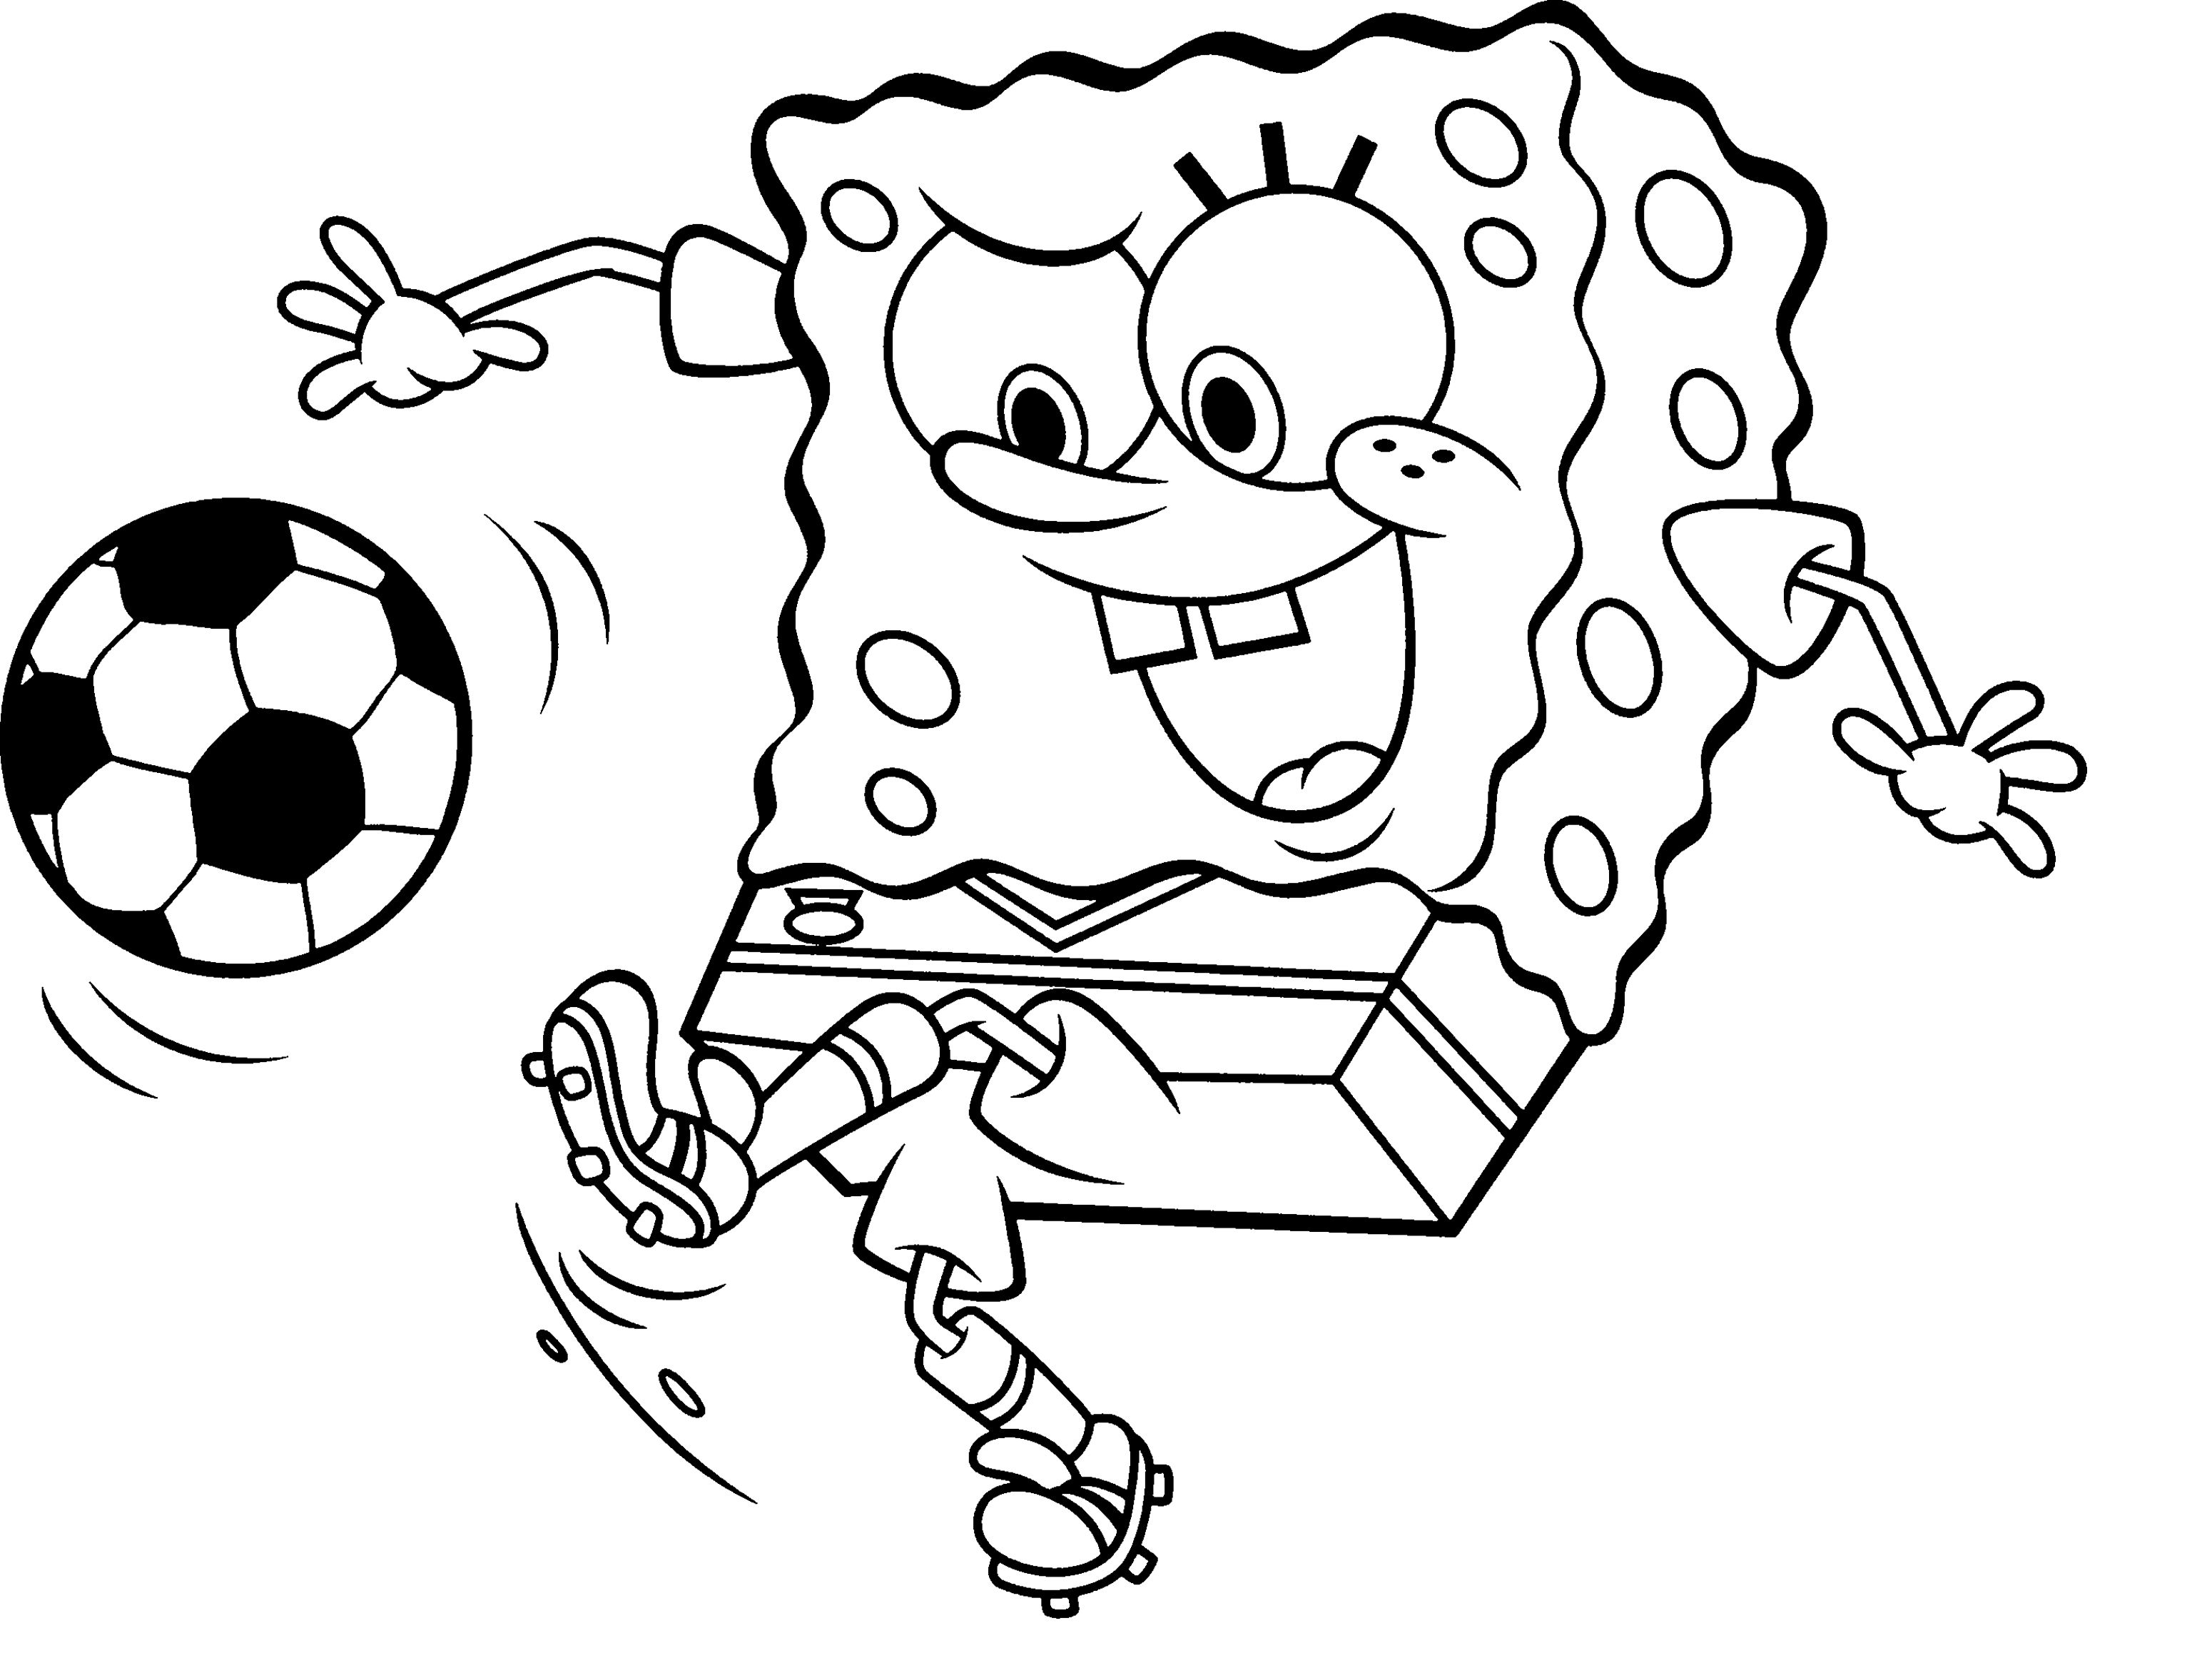 coloring pages online spongebob : Collection Of Free Spongebob Chocolate Coloring Page From All Over The World